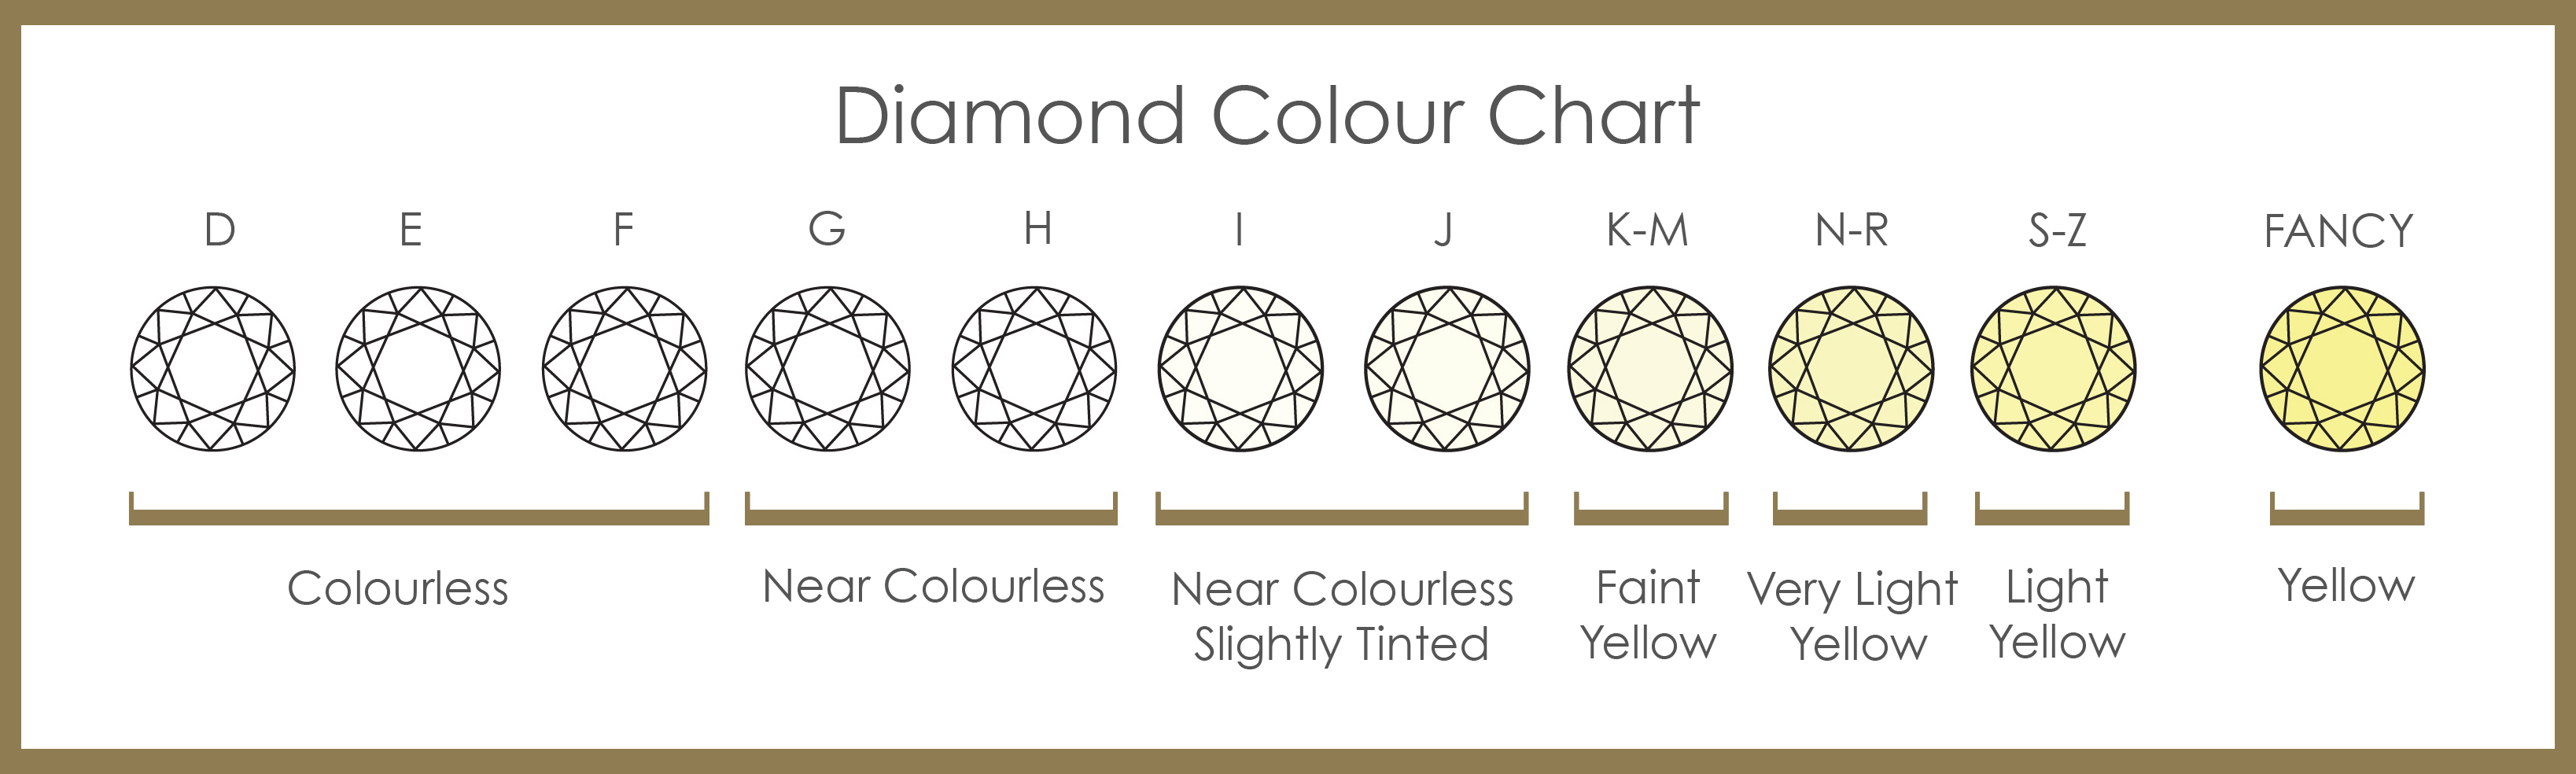 Diamond Color Chart Price